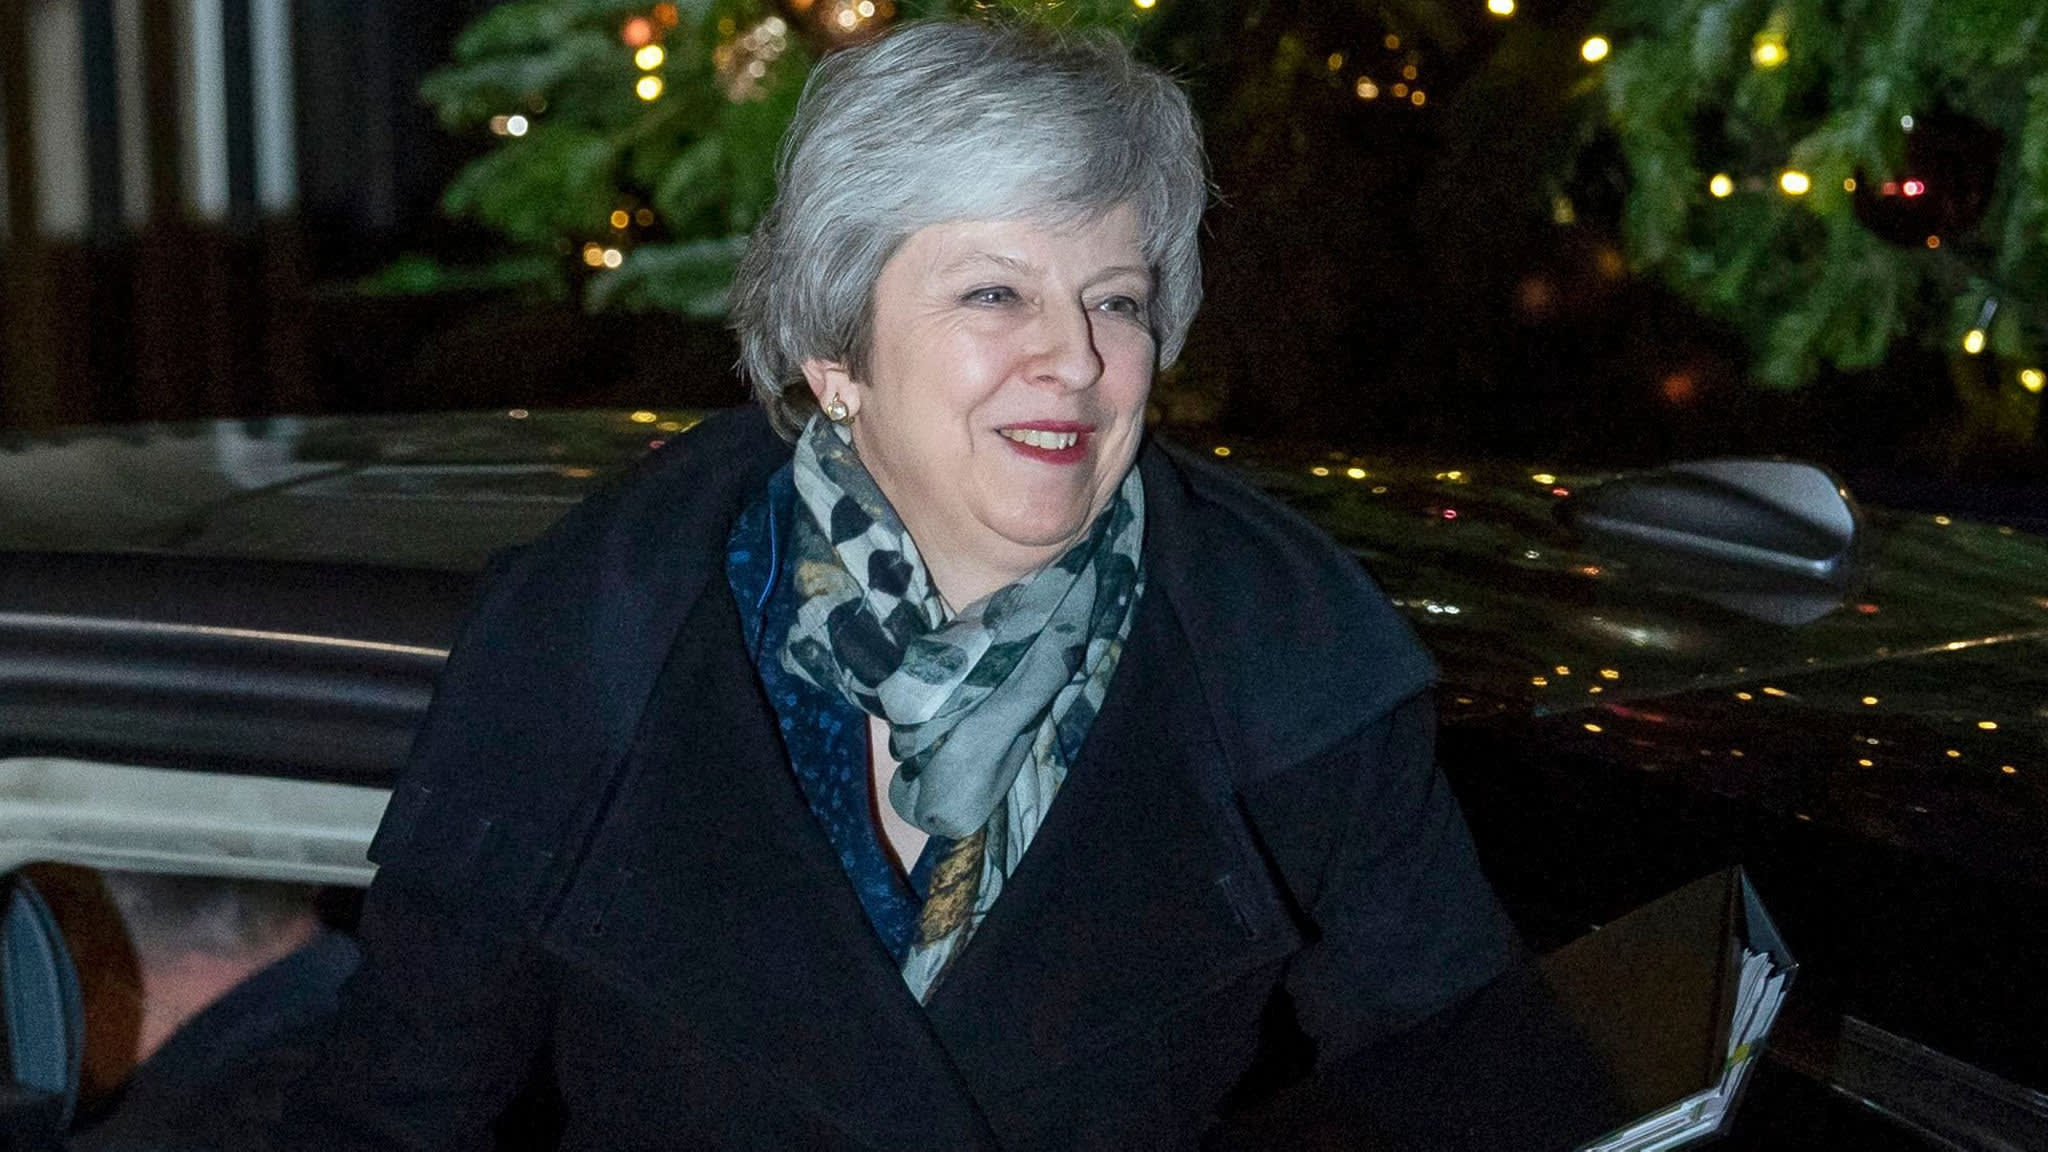 Theresa May looks to Brussels to defuse backstop row